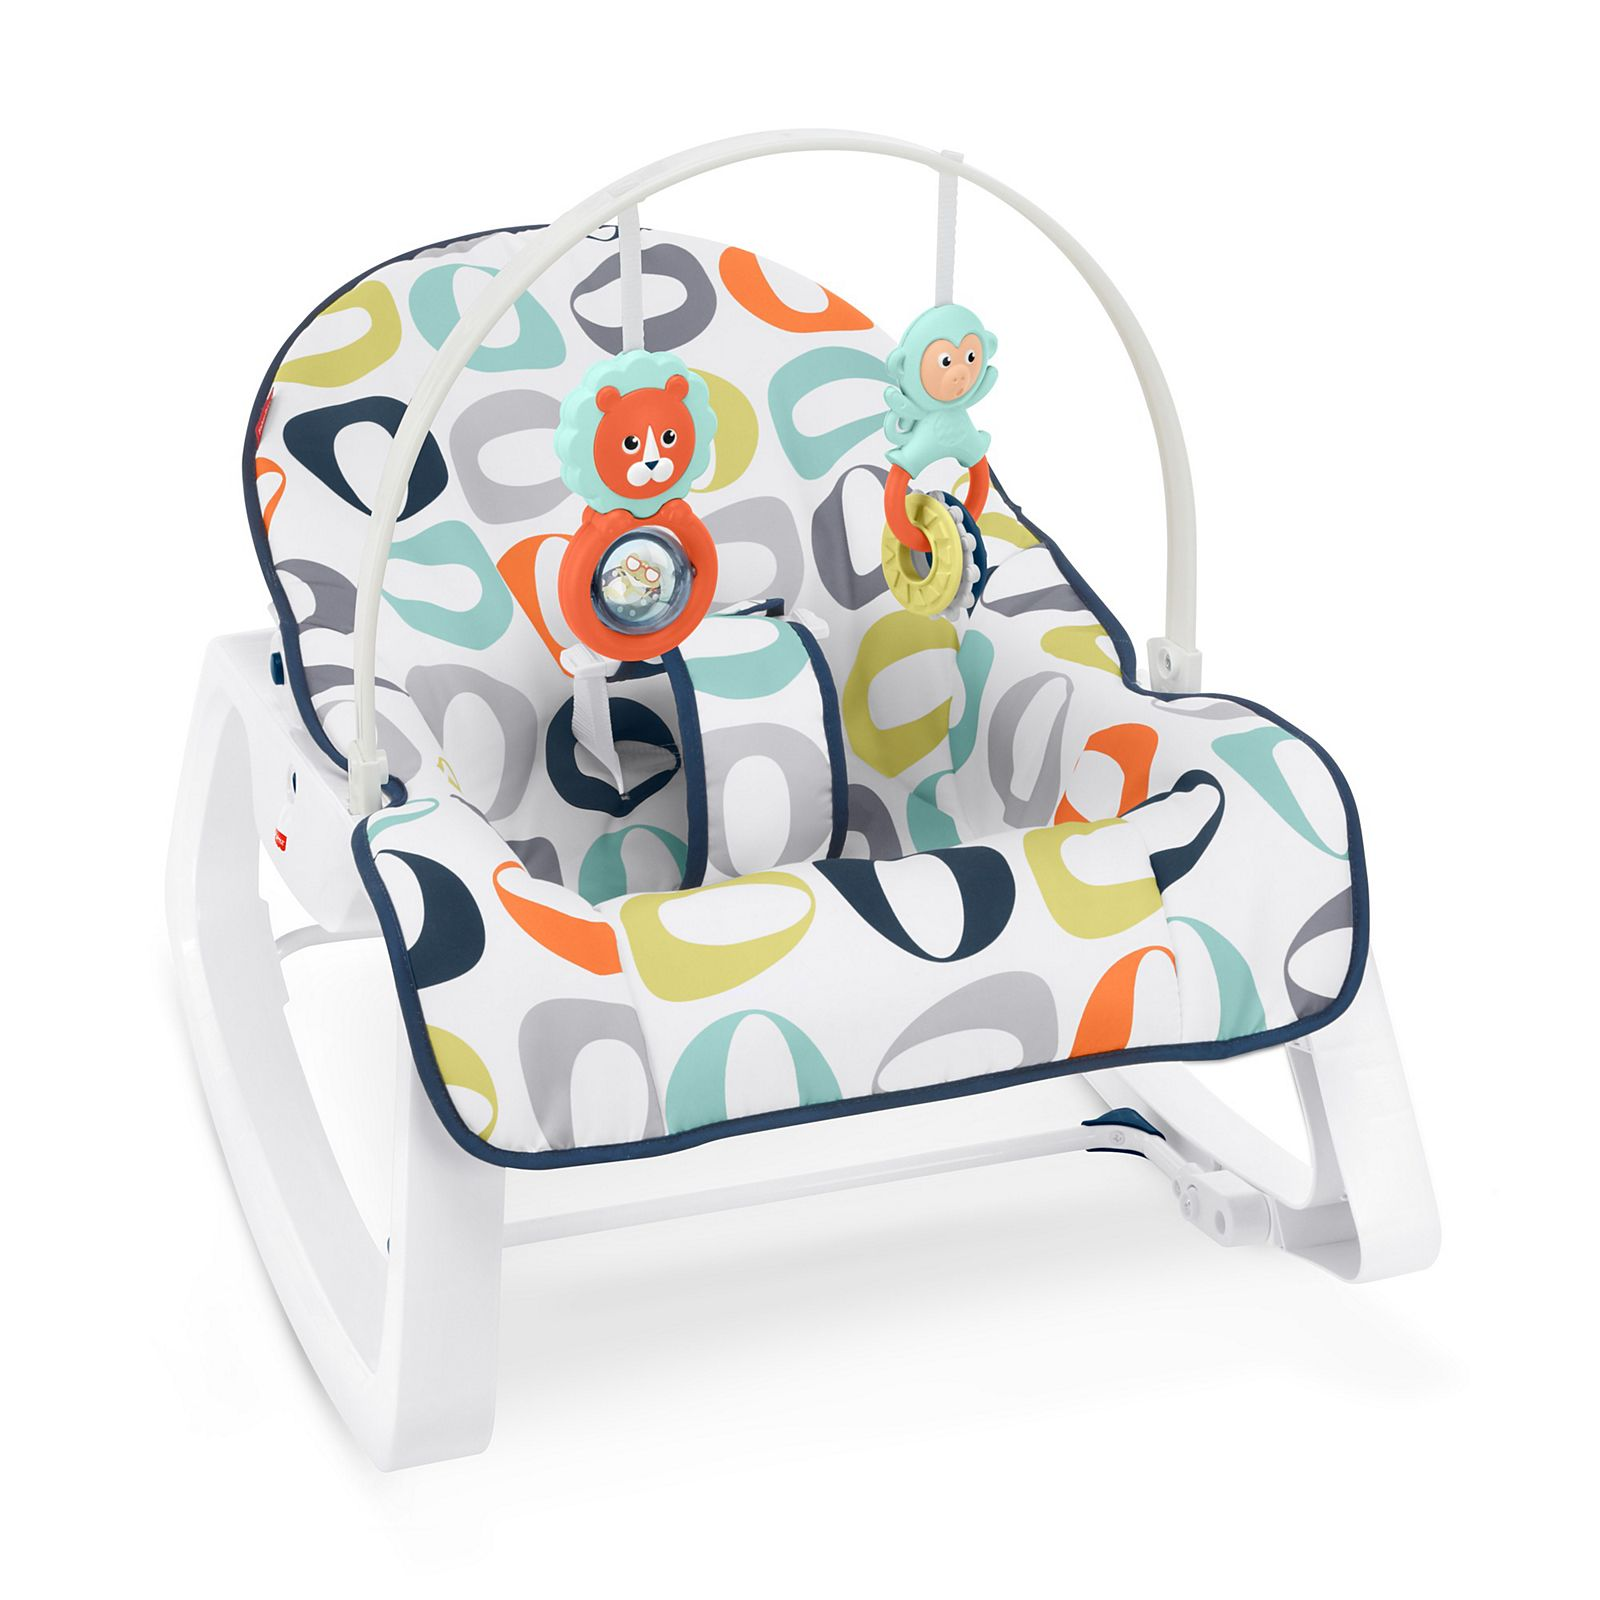 Fisher Price INFANT NEWBORN TO TODDLER ROCKER Sleeper Replacement Seat Pad